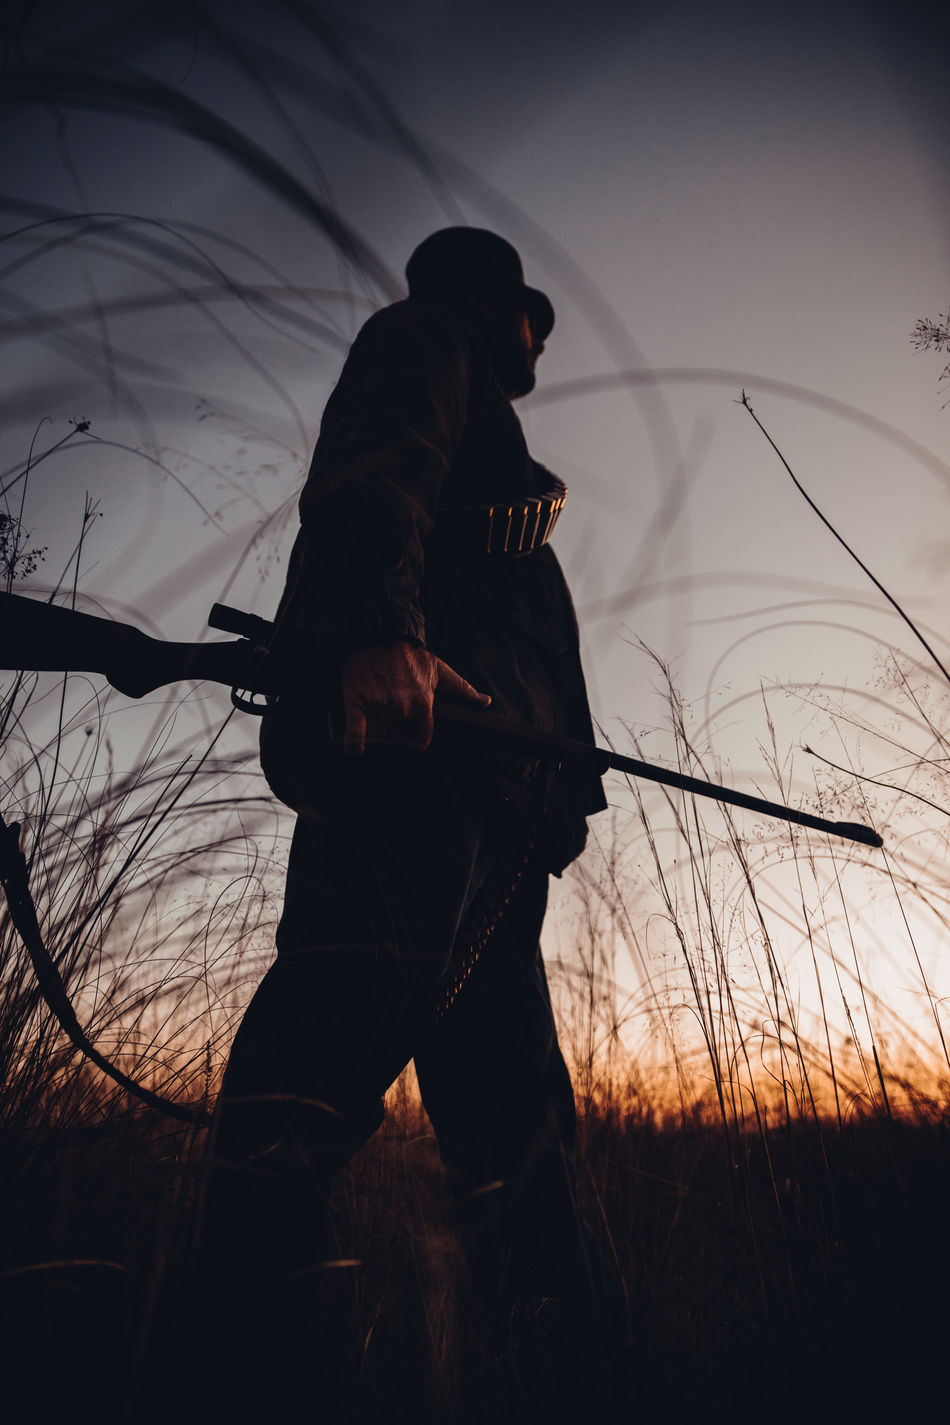 Hunter with cartridge observing grassland with shotgun in sunrise Agriculture Aiming Field Hobby Hunter Hunting Lifestyle Long Grass Man Morning Nature Observe People Permit Shooting Shotgun Silhouette Skill  Sniper Sunrise Weapon Western Wild Animals Wilderness Wildlife